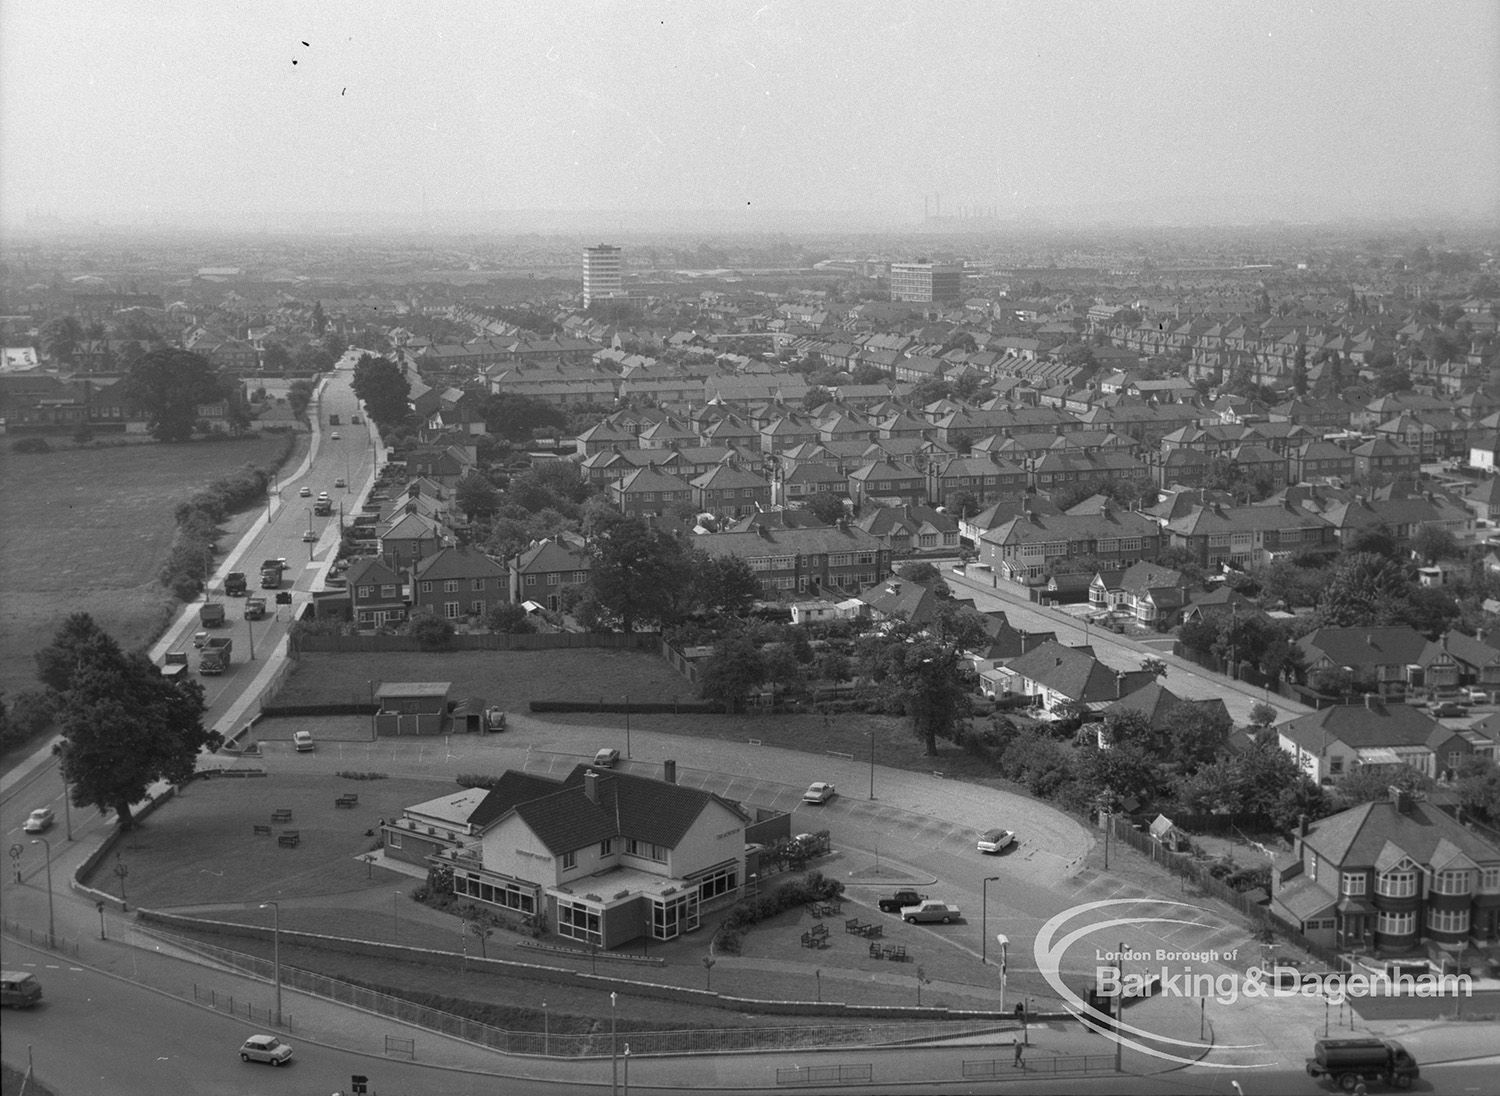 K19--Moby Dick Roundabout, Chadwell Heath--1967--Pic 1.jpg